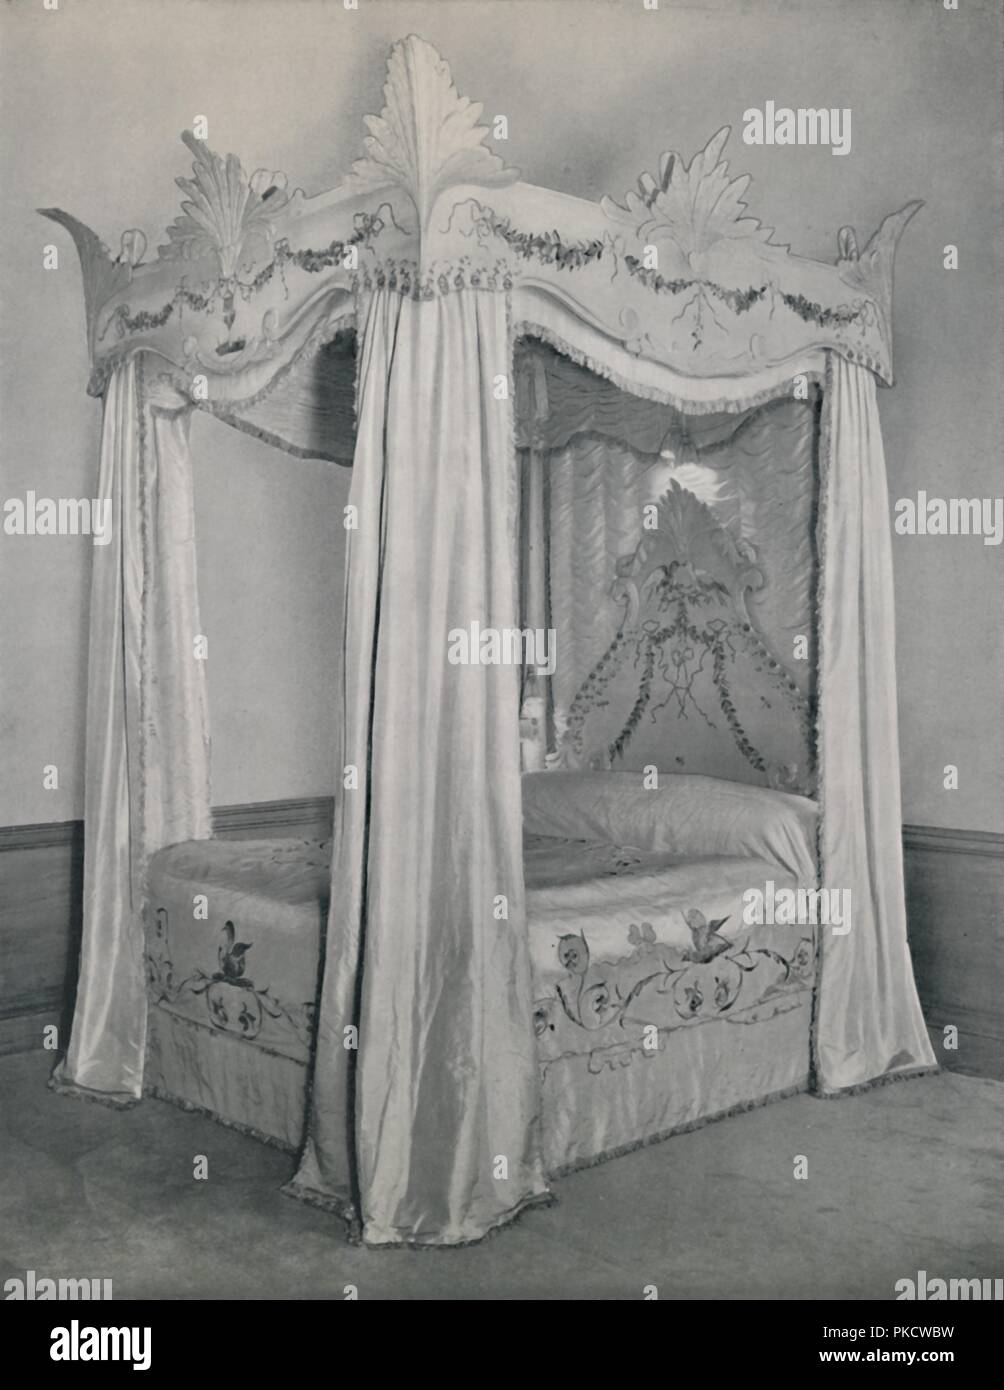 'Four-post bed', 1933. Designed by Elwes Ltd, London, for the Yorkshire house of the Viscountess Allendale, (Violet Lucy Emily Seely). Canopy carved to represent bunched feathers - bedspread, valance, curtains of taffeta with applied antique embroidery. From Decorative Art 1933 - Year-Book of The Studio, edited by C. G. Holme. [The Studio Ltd., London, 1933] - Stock Image